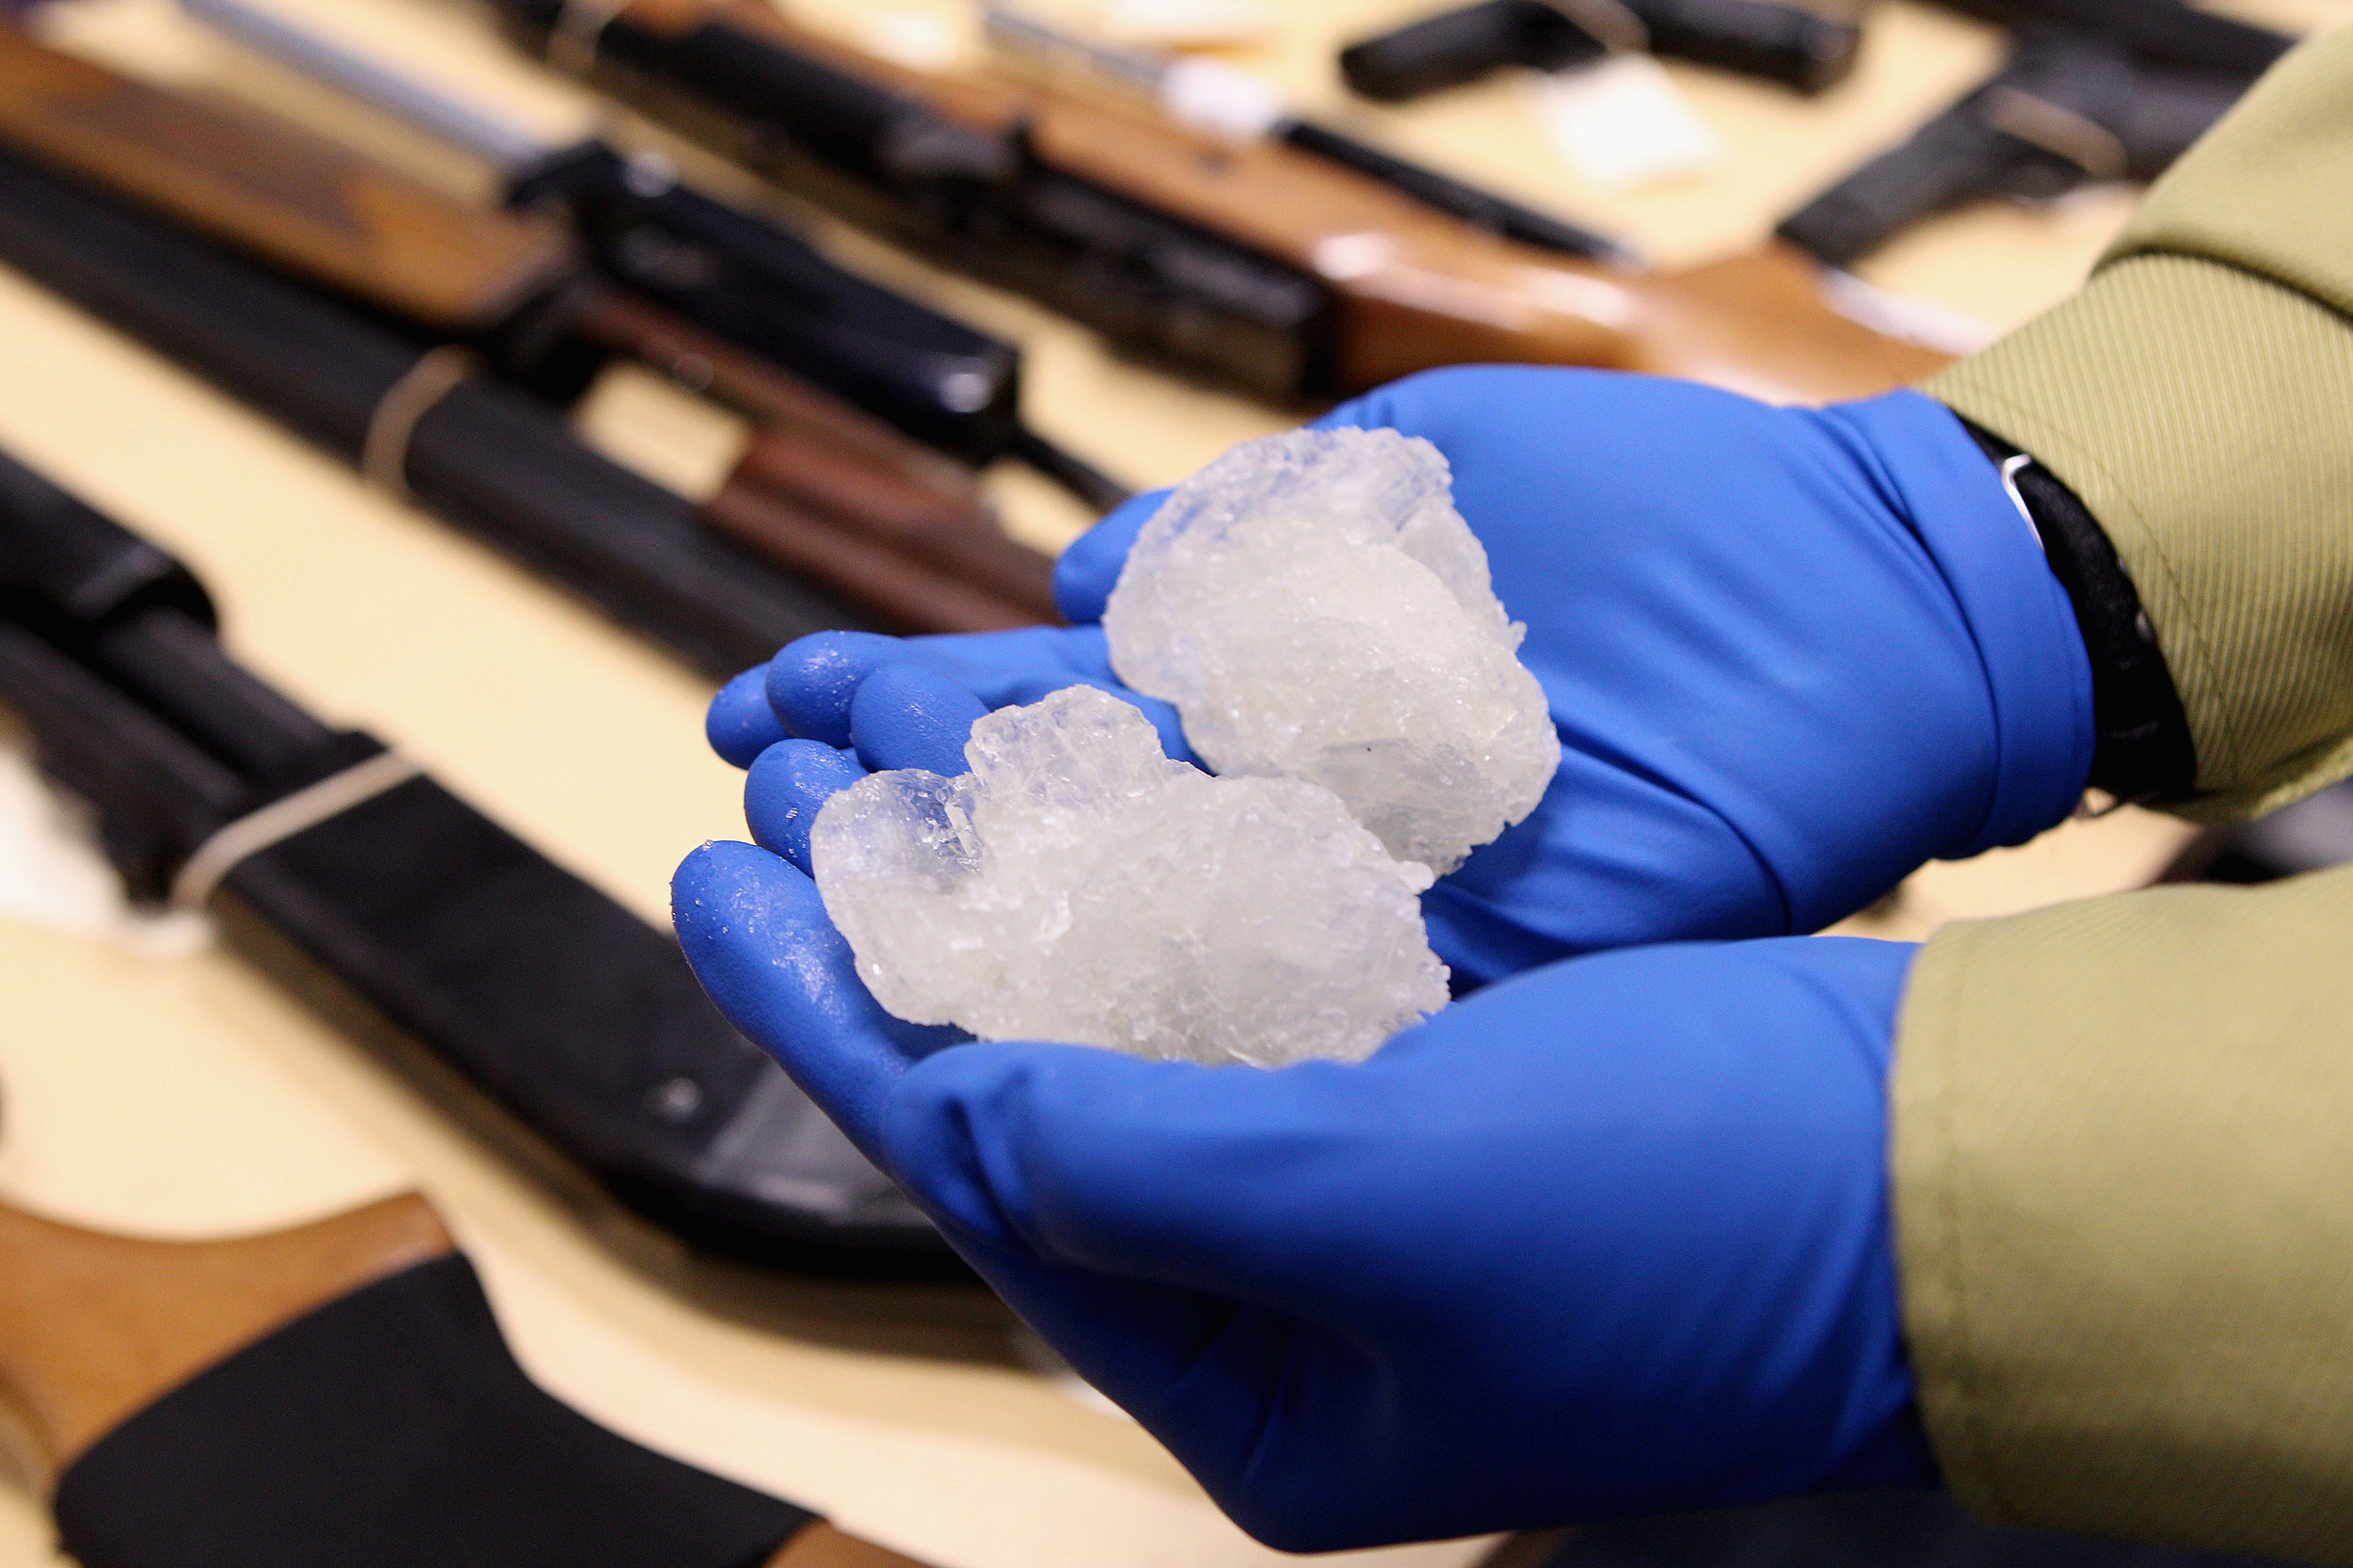 33 Wyoming Drug Arrests Reported in 'Operation Smack' [Photos]